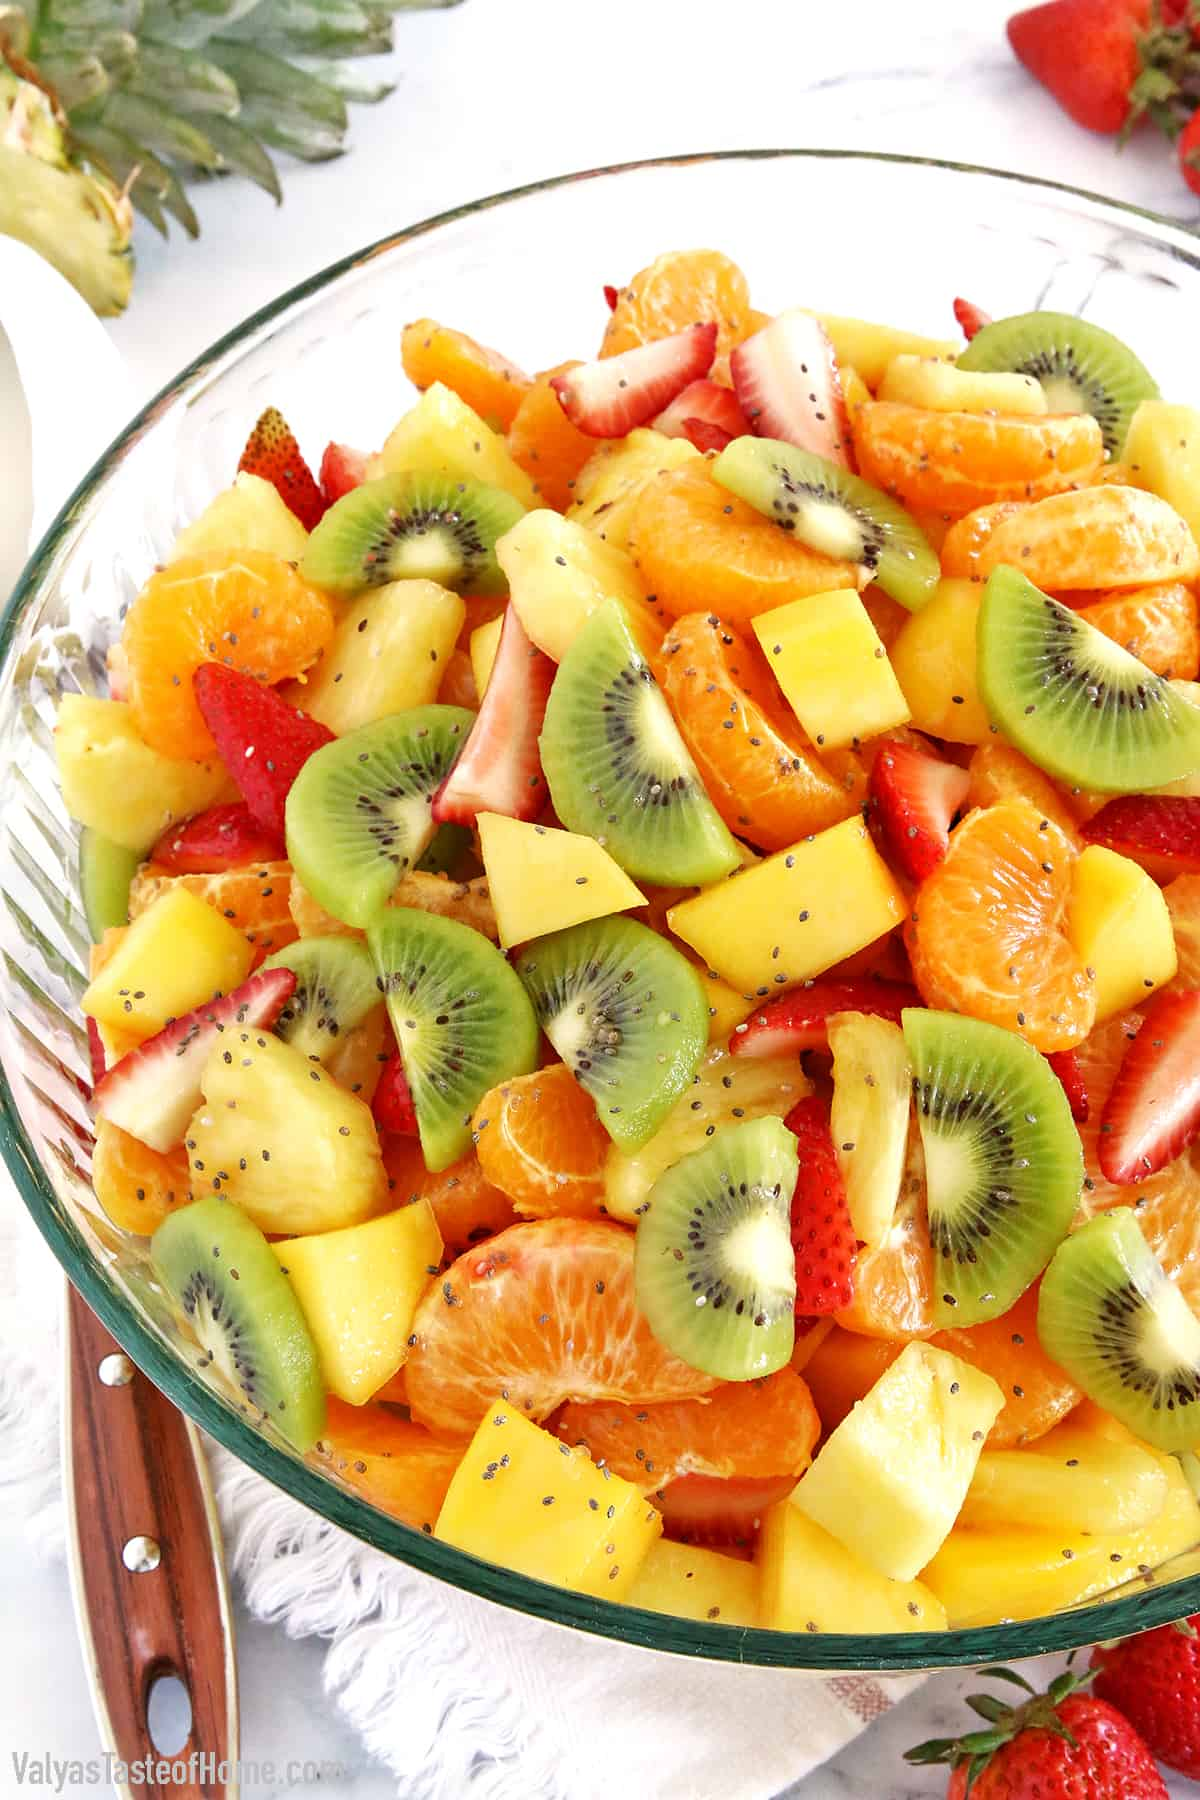 This Tropical Fruit Salad is a great addition to your meal as a dessert or it can be a perfect snack any time of the year especially during hot summer days.